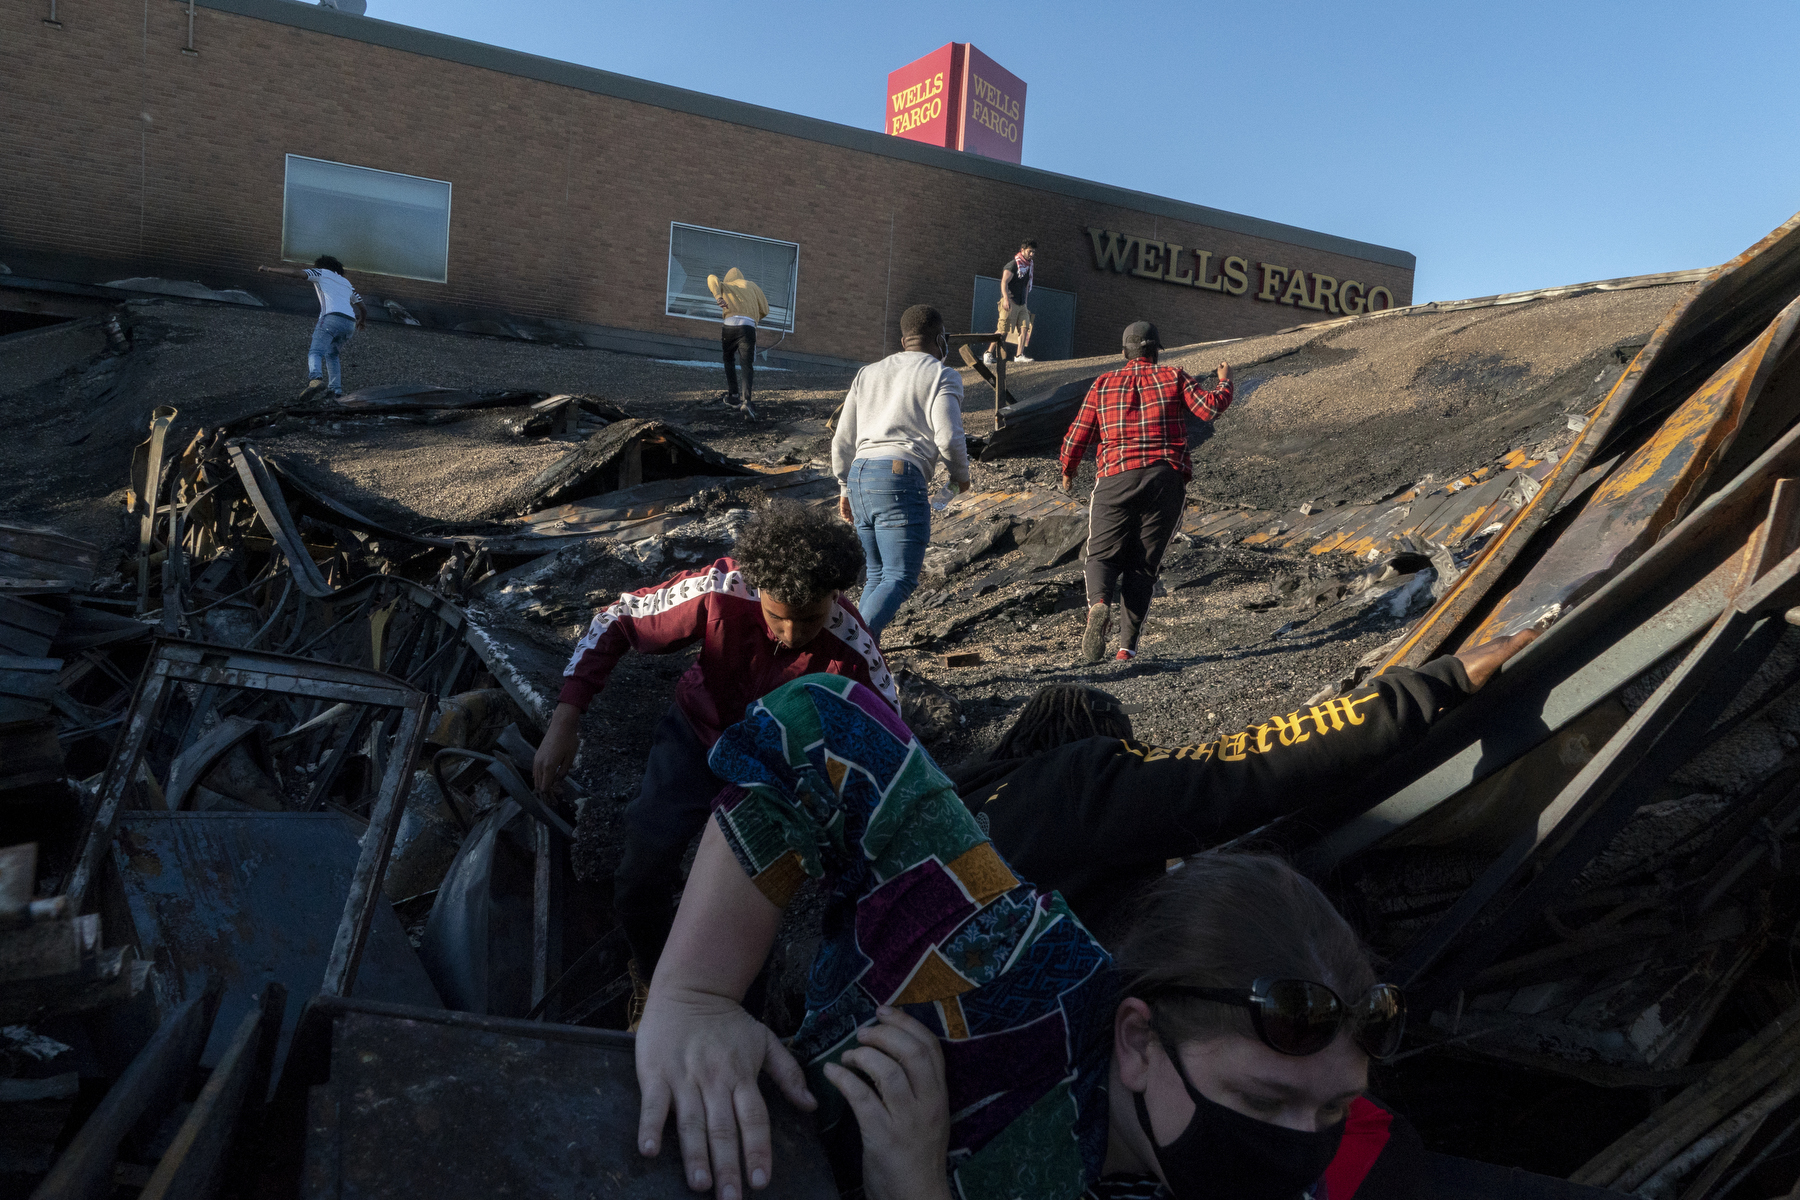 Minneapolis, May 30, 2020. People visit and take selfies on the collapsed roof of a Wells Fargo, destroyed in the riots and arson that followed the killing of George Floyd.